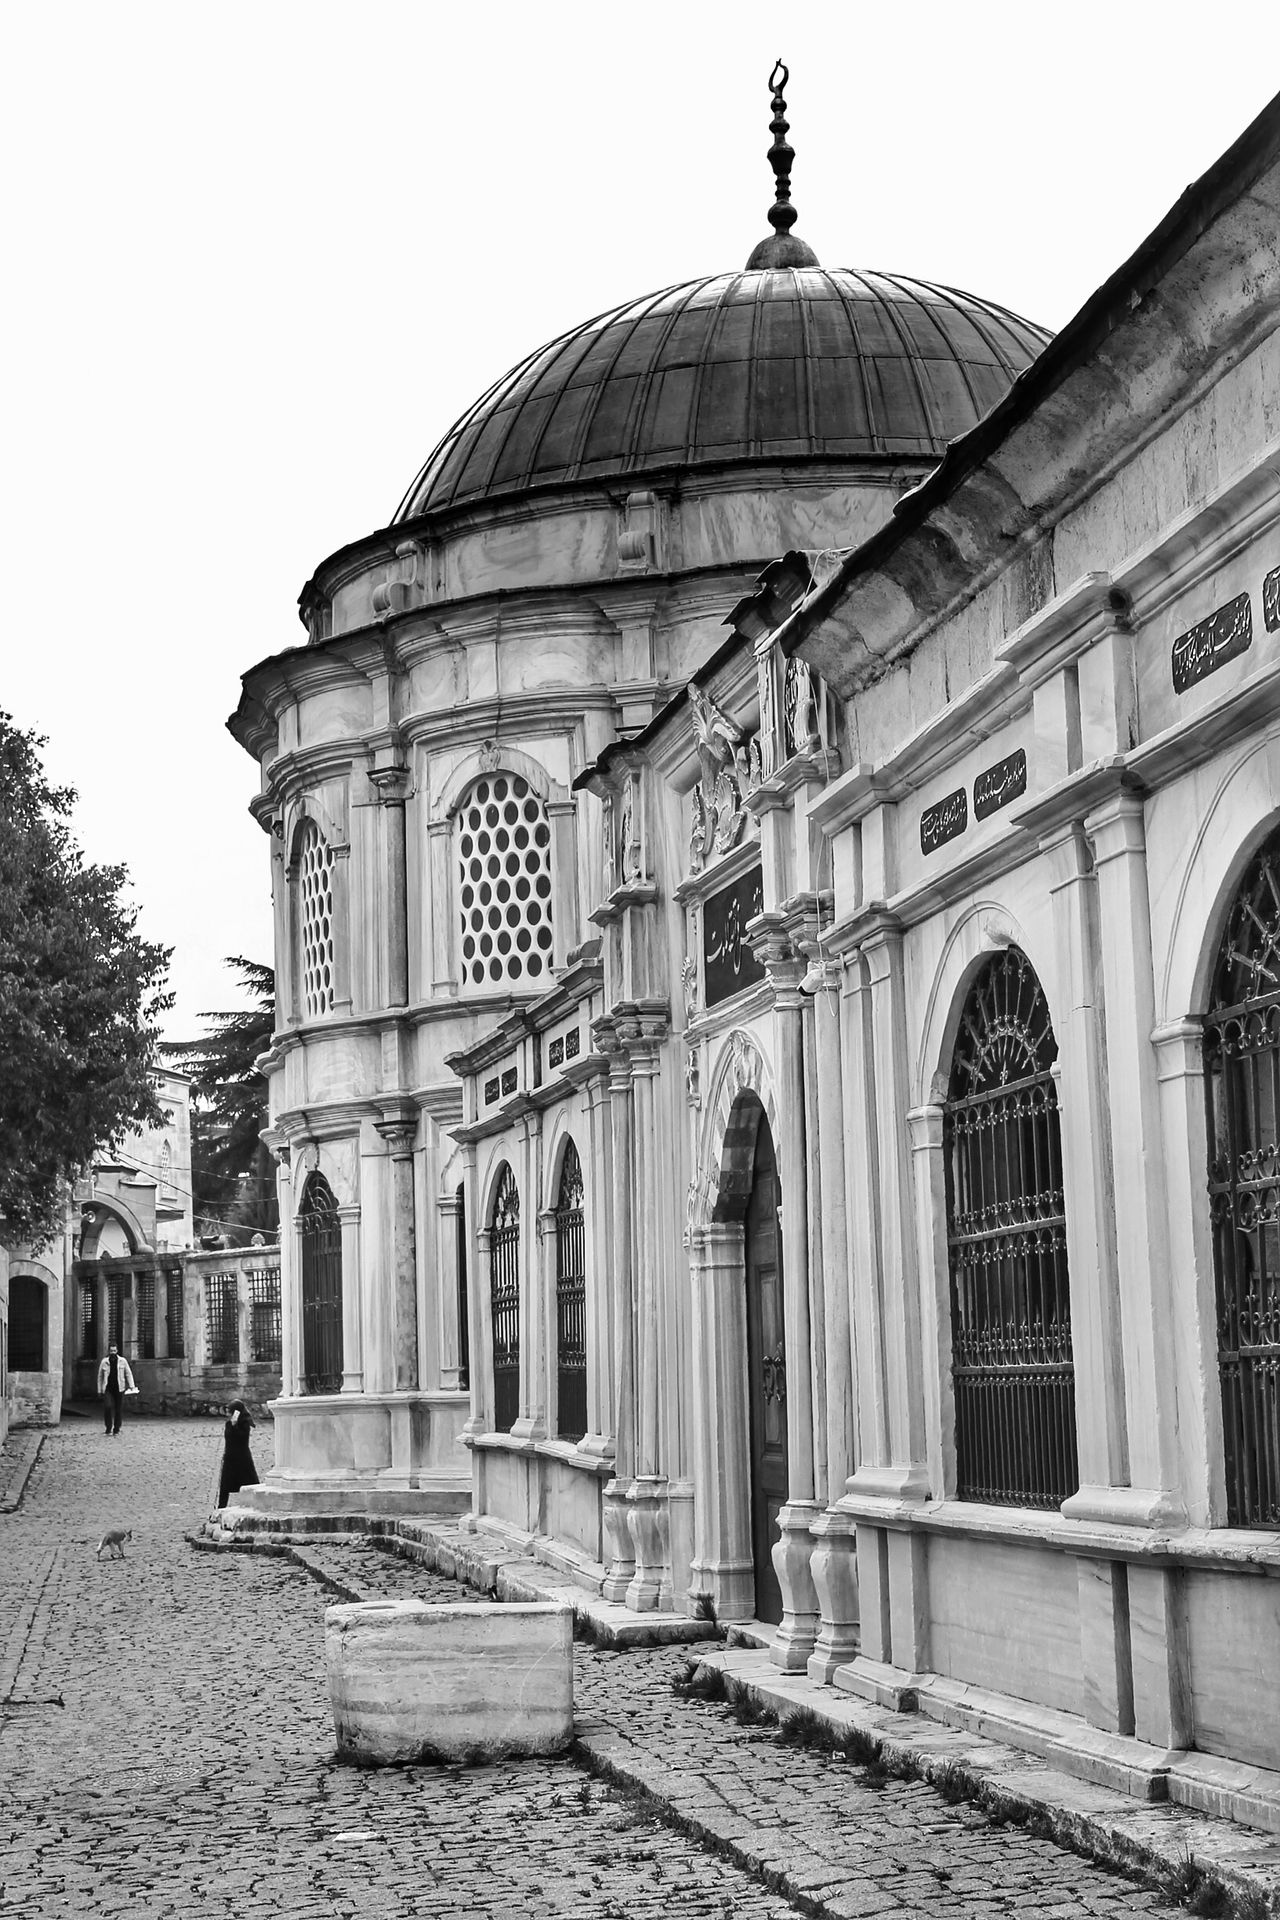 Istanbul City Turkey History EyupSultanMosque Photography Photographer Blackandwhite Travel Landscape_photography First Eyeem Photo